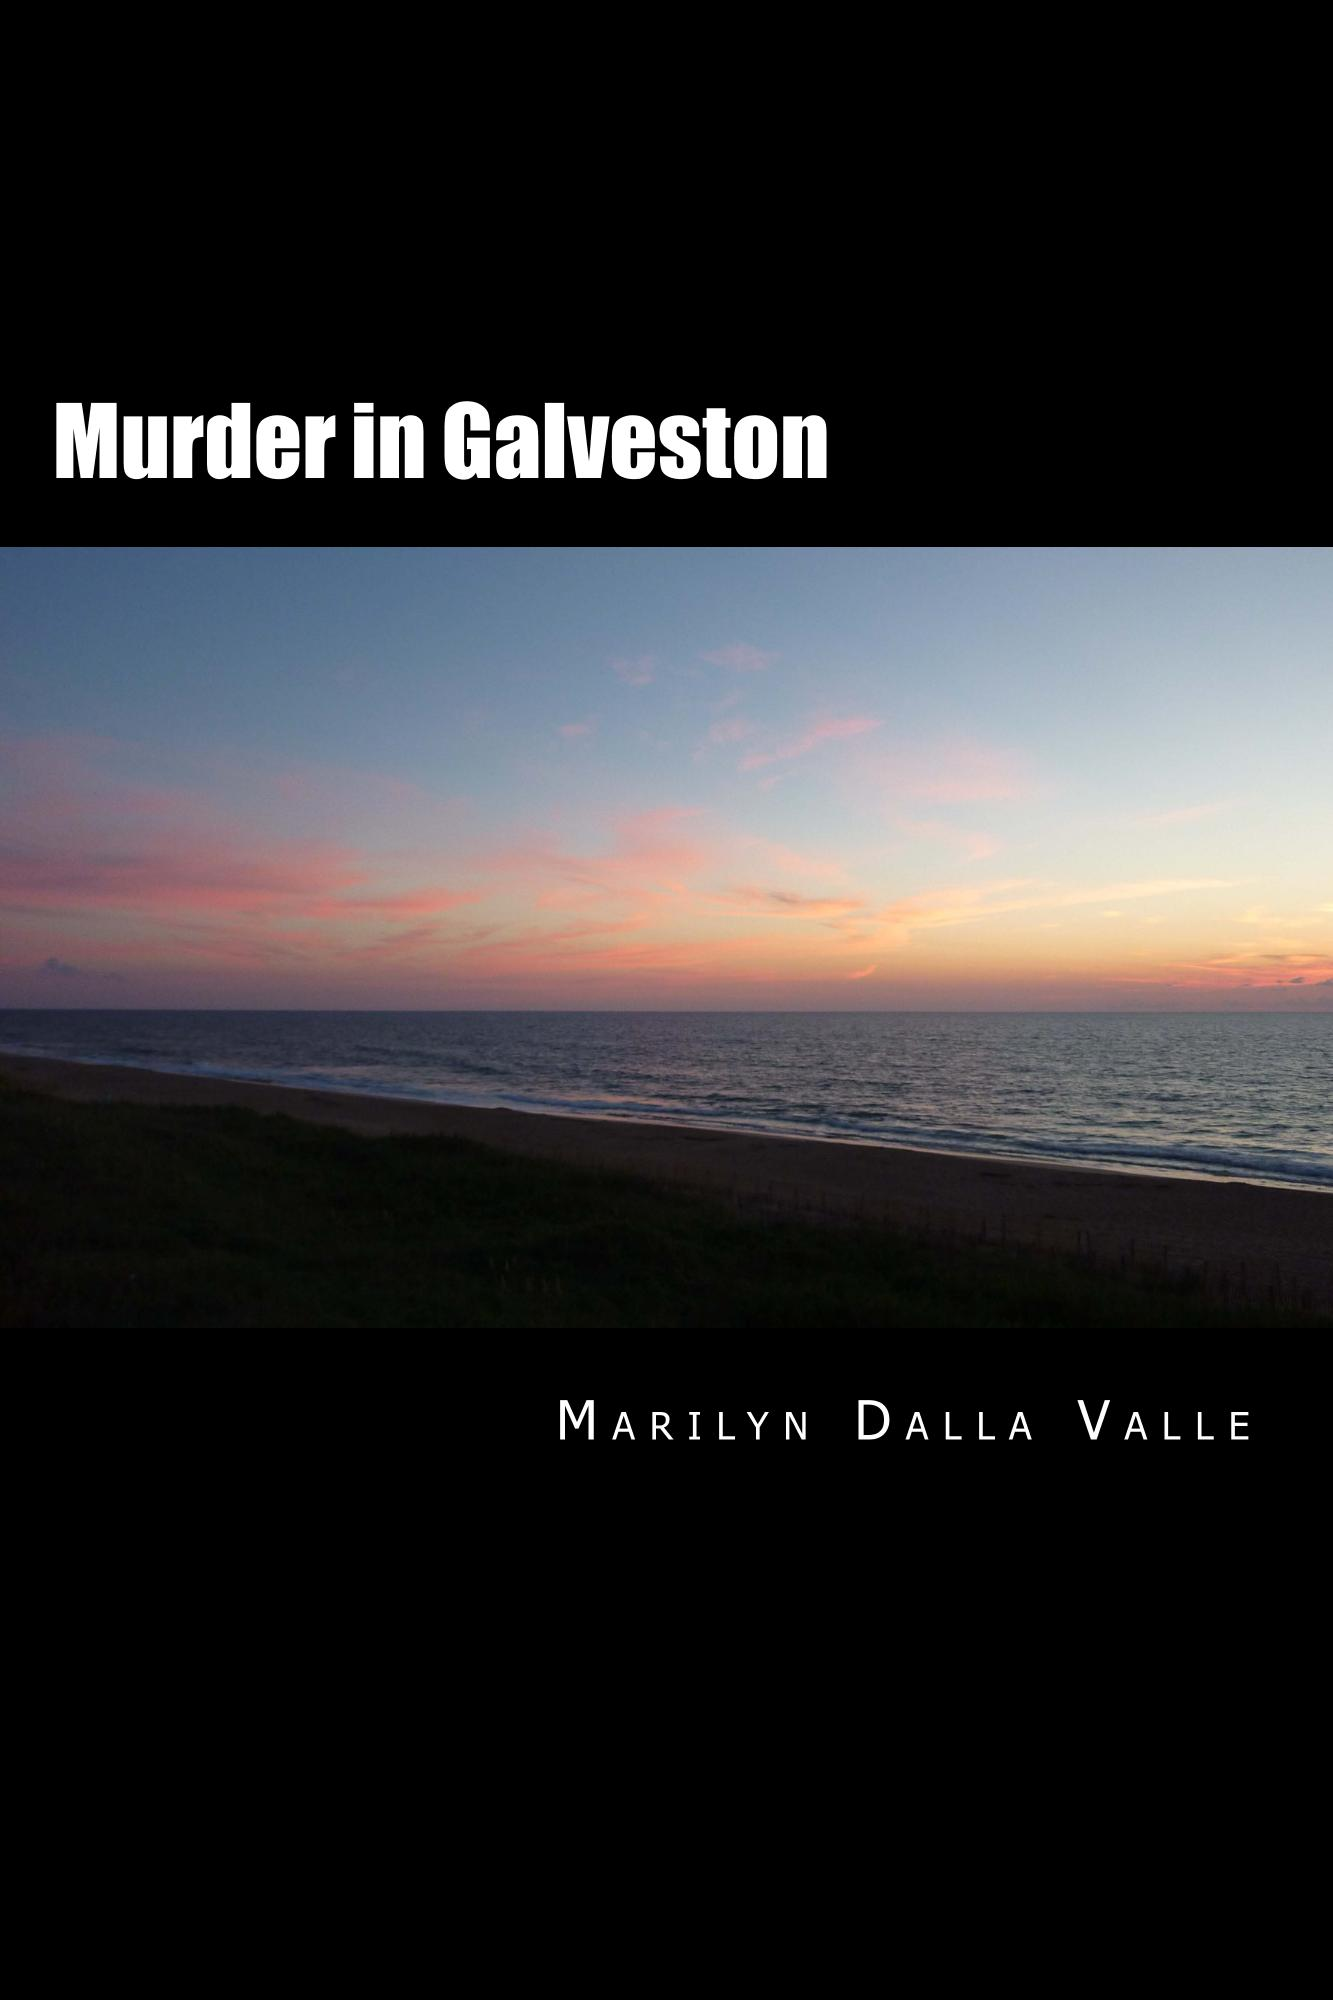 Murder_in_Galveston_Cover_for_Kindle (2).jpg